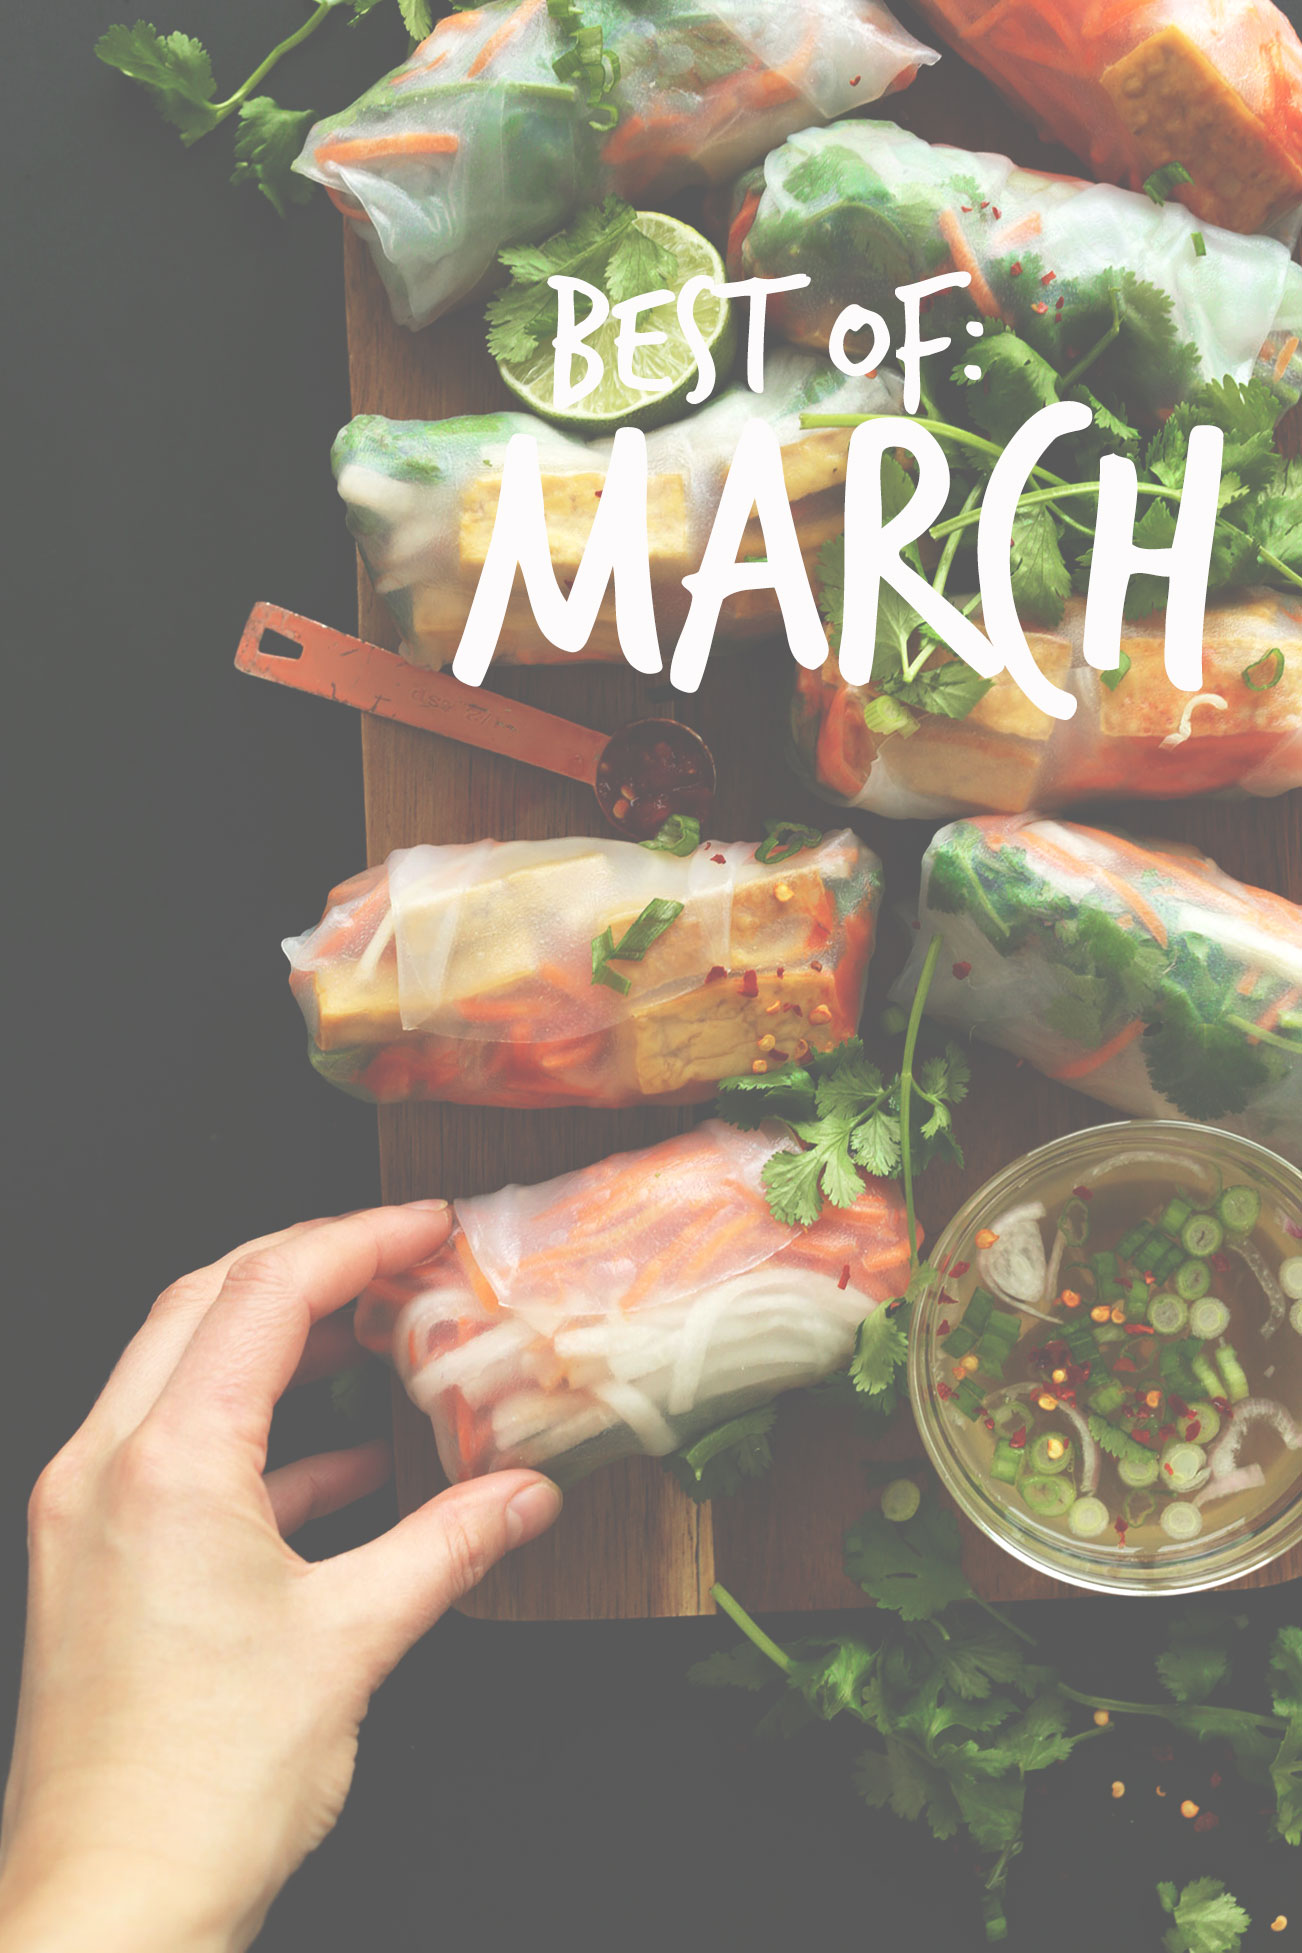 Photo of spring rolls for our Best of March post